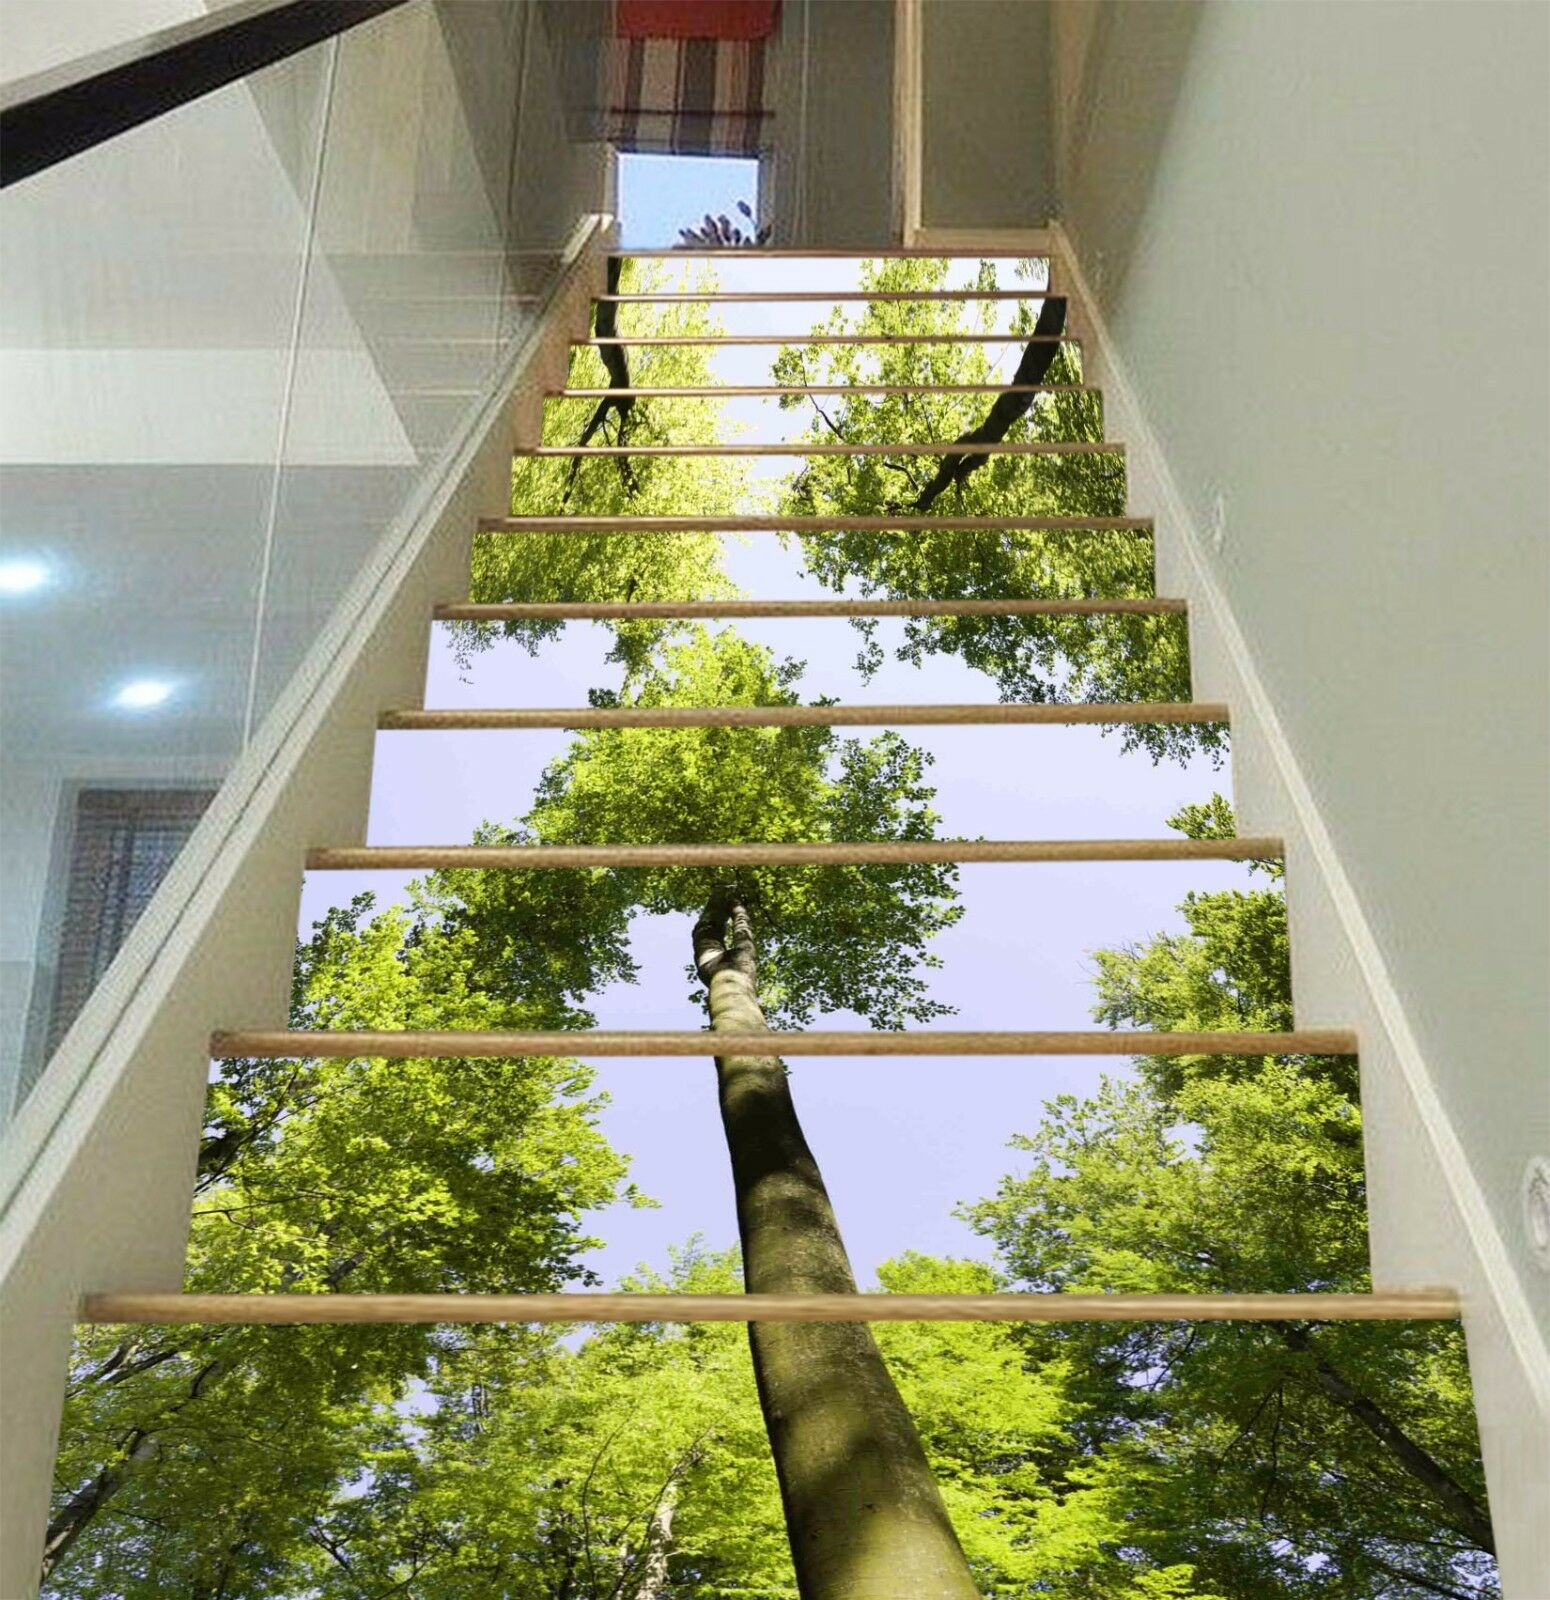 3D High Trees 227 Stairs Risers Decoration Photo Mural Vinyl Decal Wallpaper US